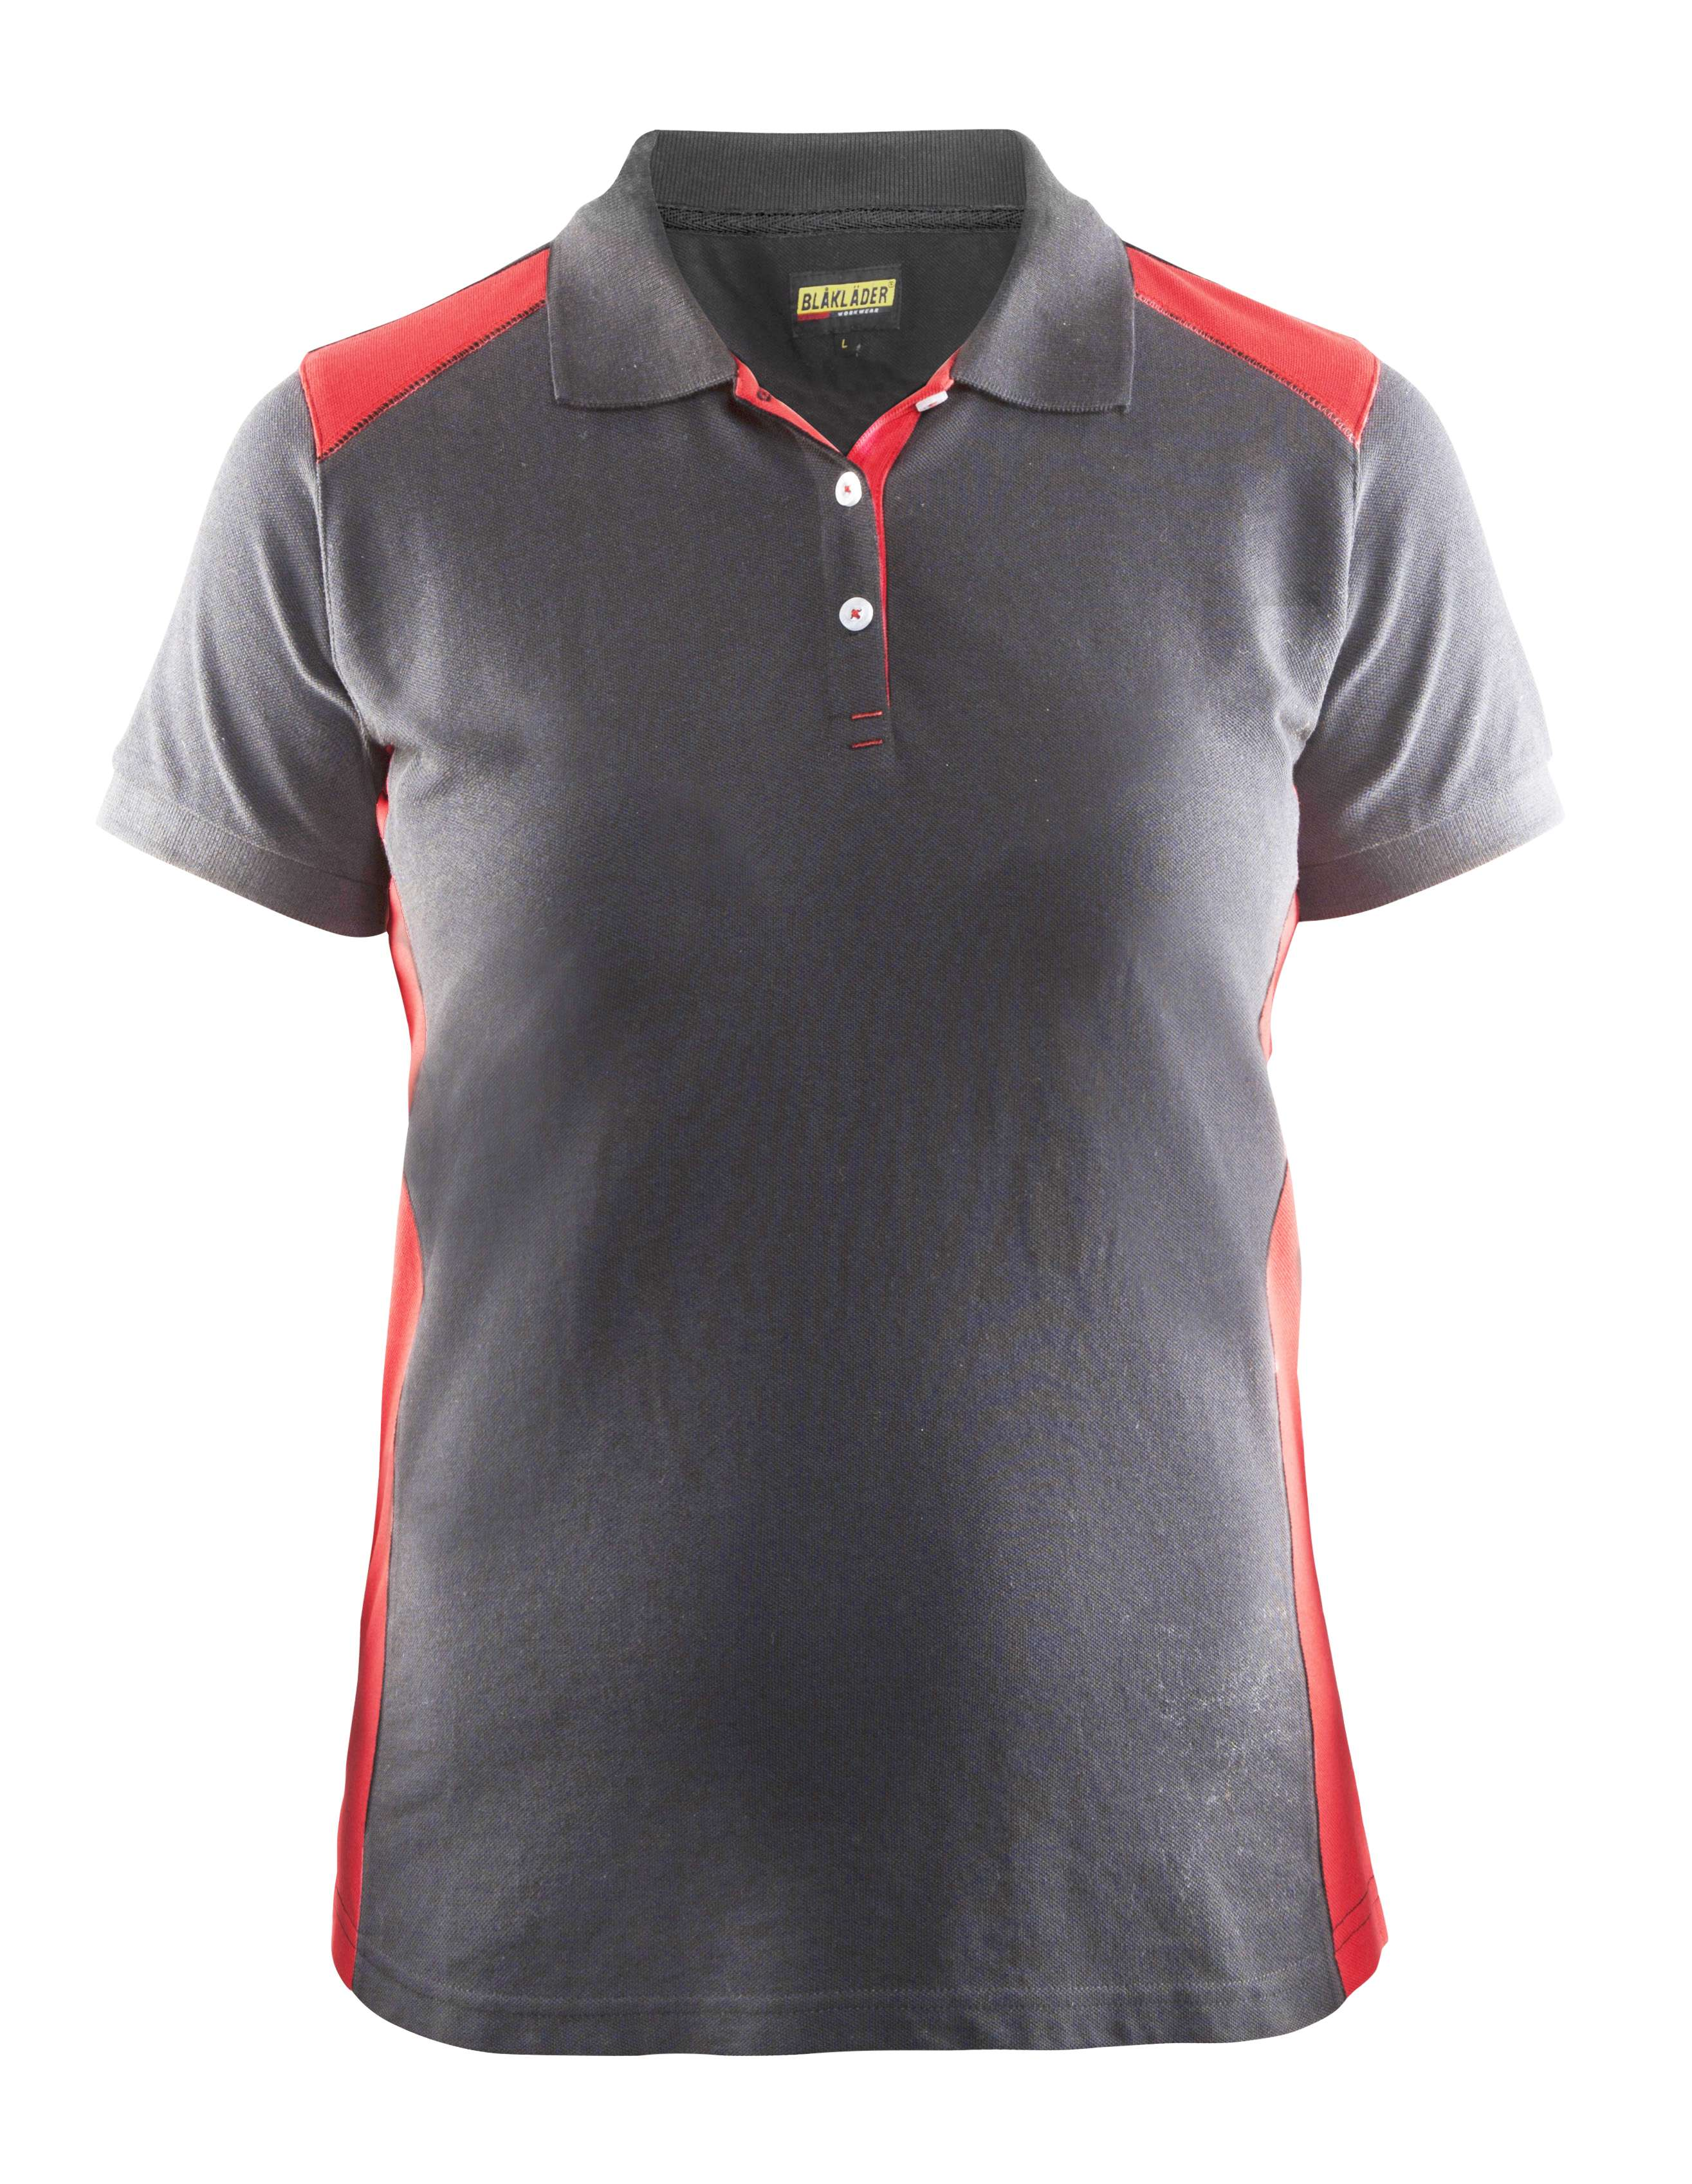 Blaklader Dames polo shirts 33901050 grijs-rood(9456)